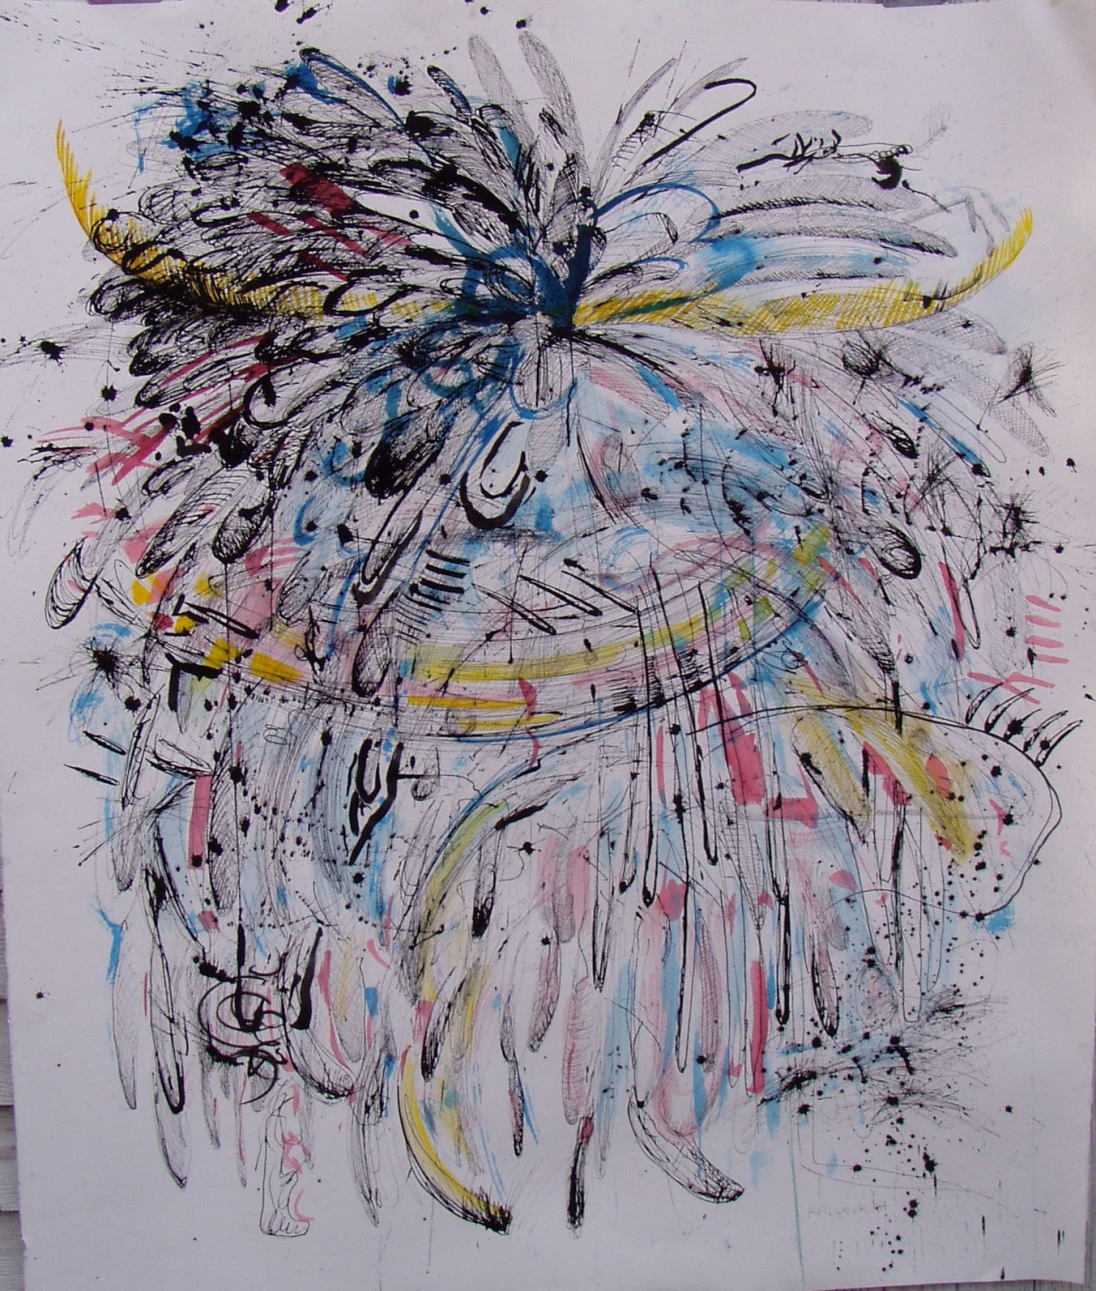 Burst-Primary Colors, ink and watercolor on paper, 55 by 46 in. Emilia Kallock 2005